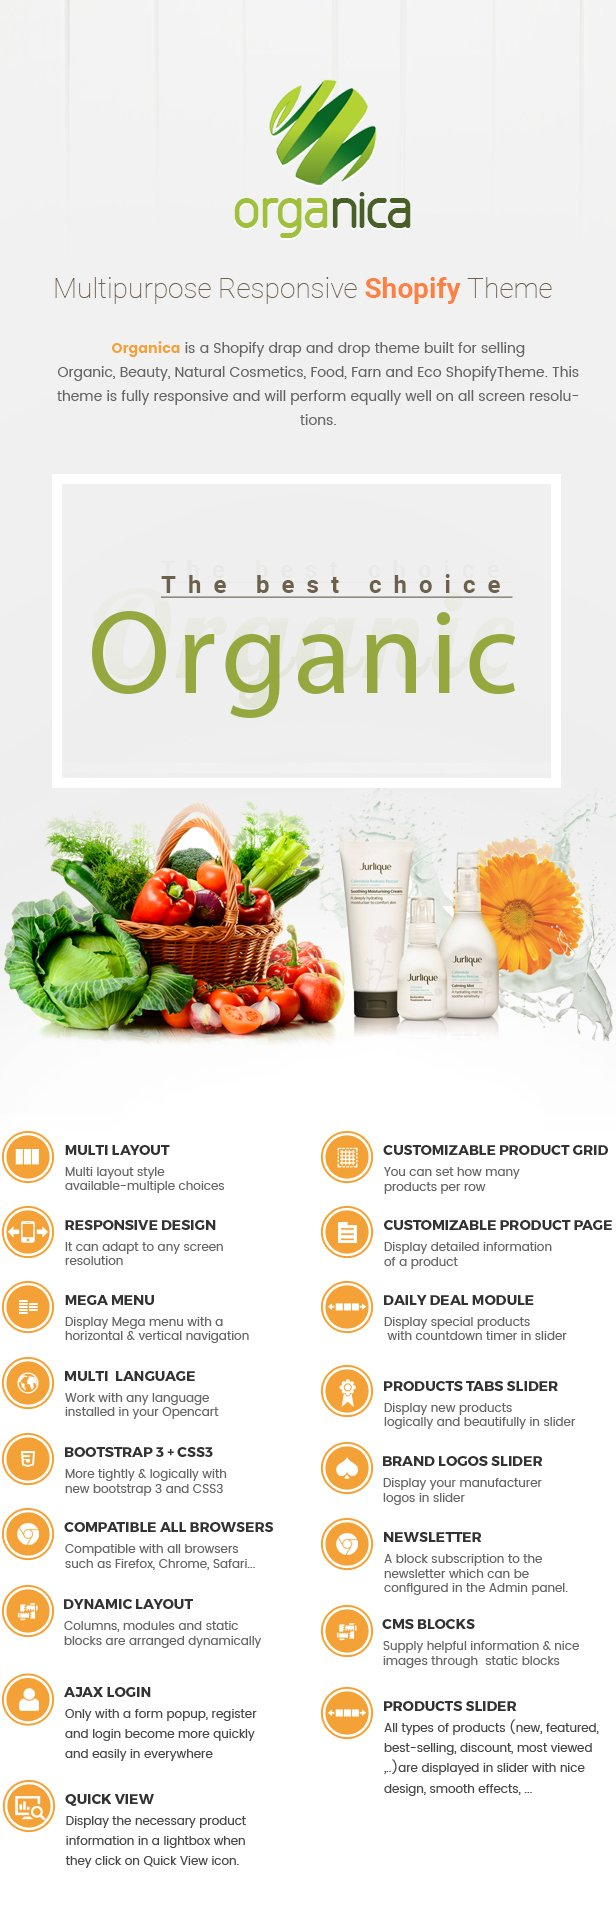 Organica - Beauty, Natural Cosmetics, Food, Farn, Eco, Organic Shopify Theme - Sections Ready FEATURES Lists